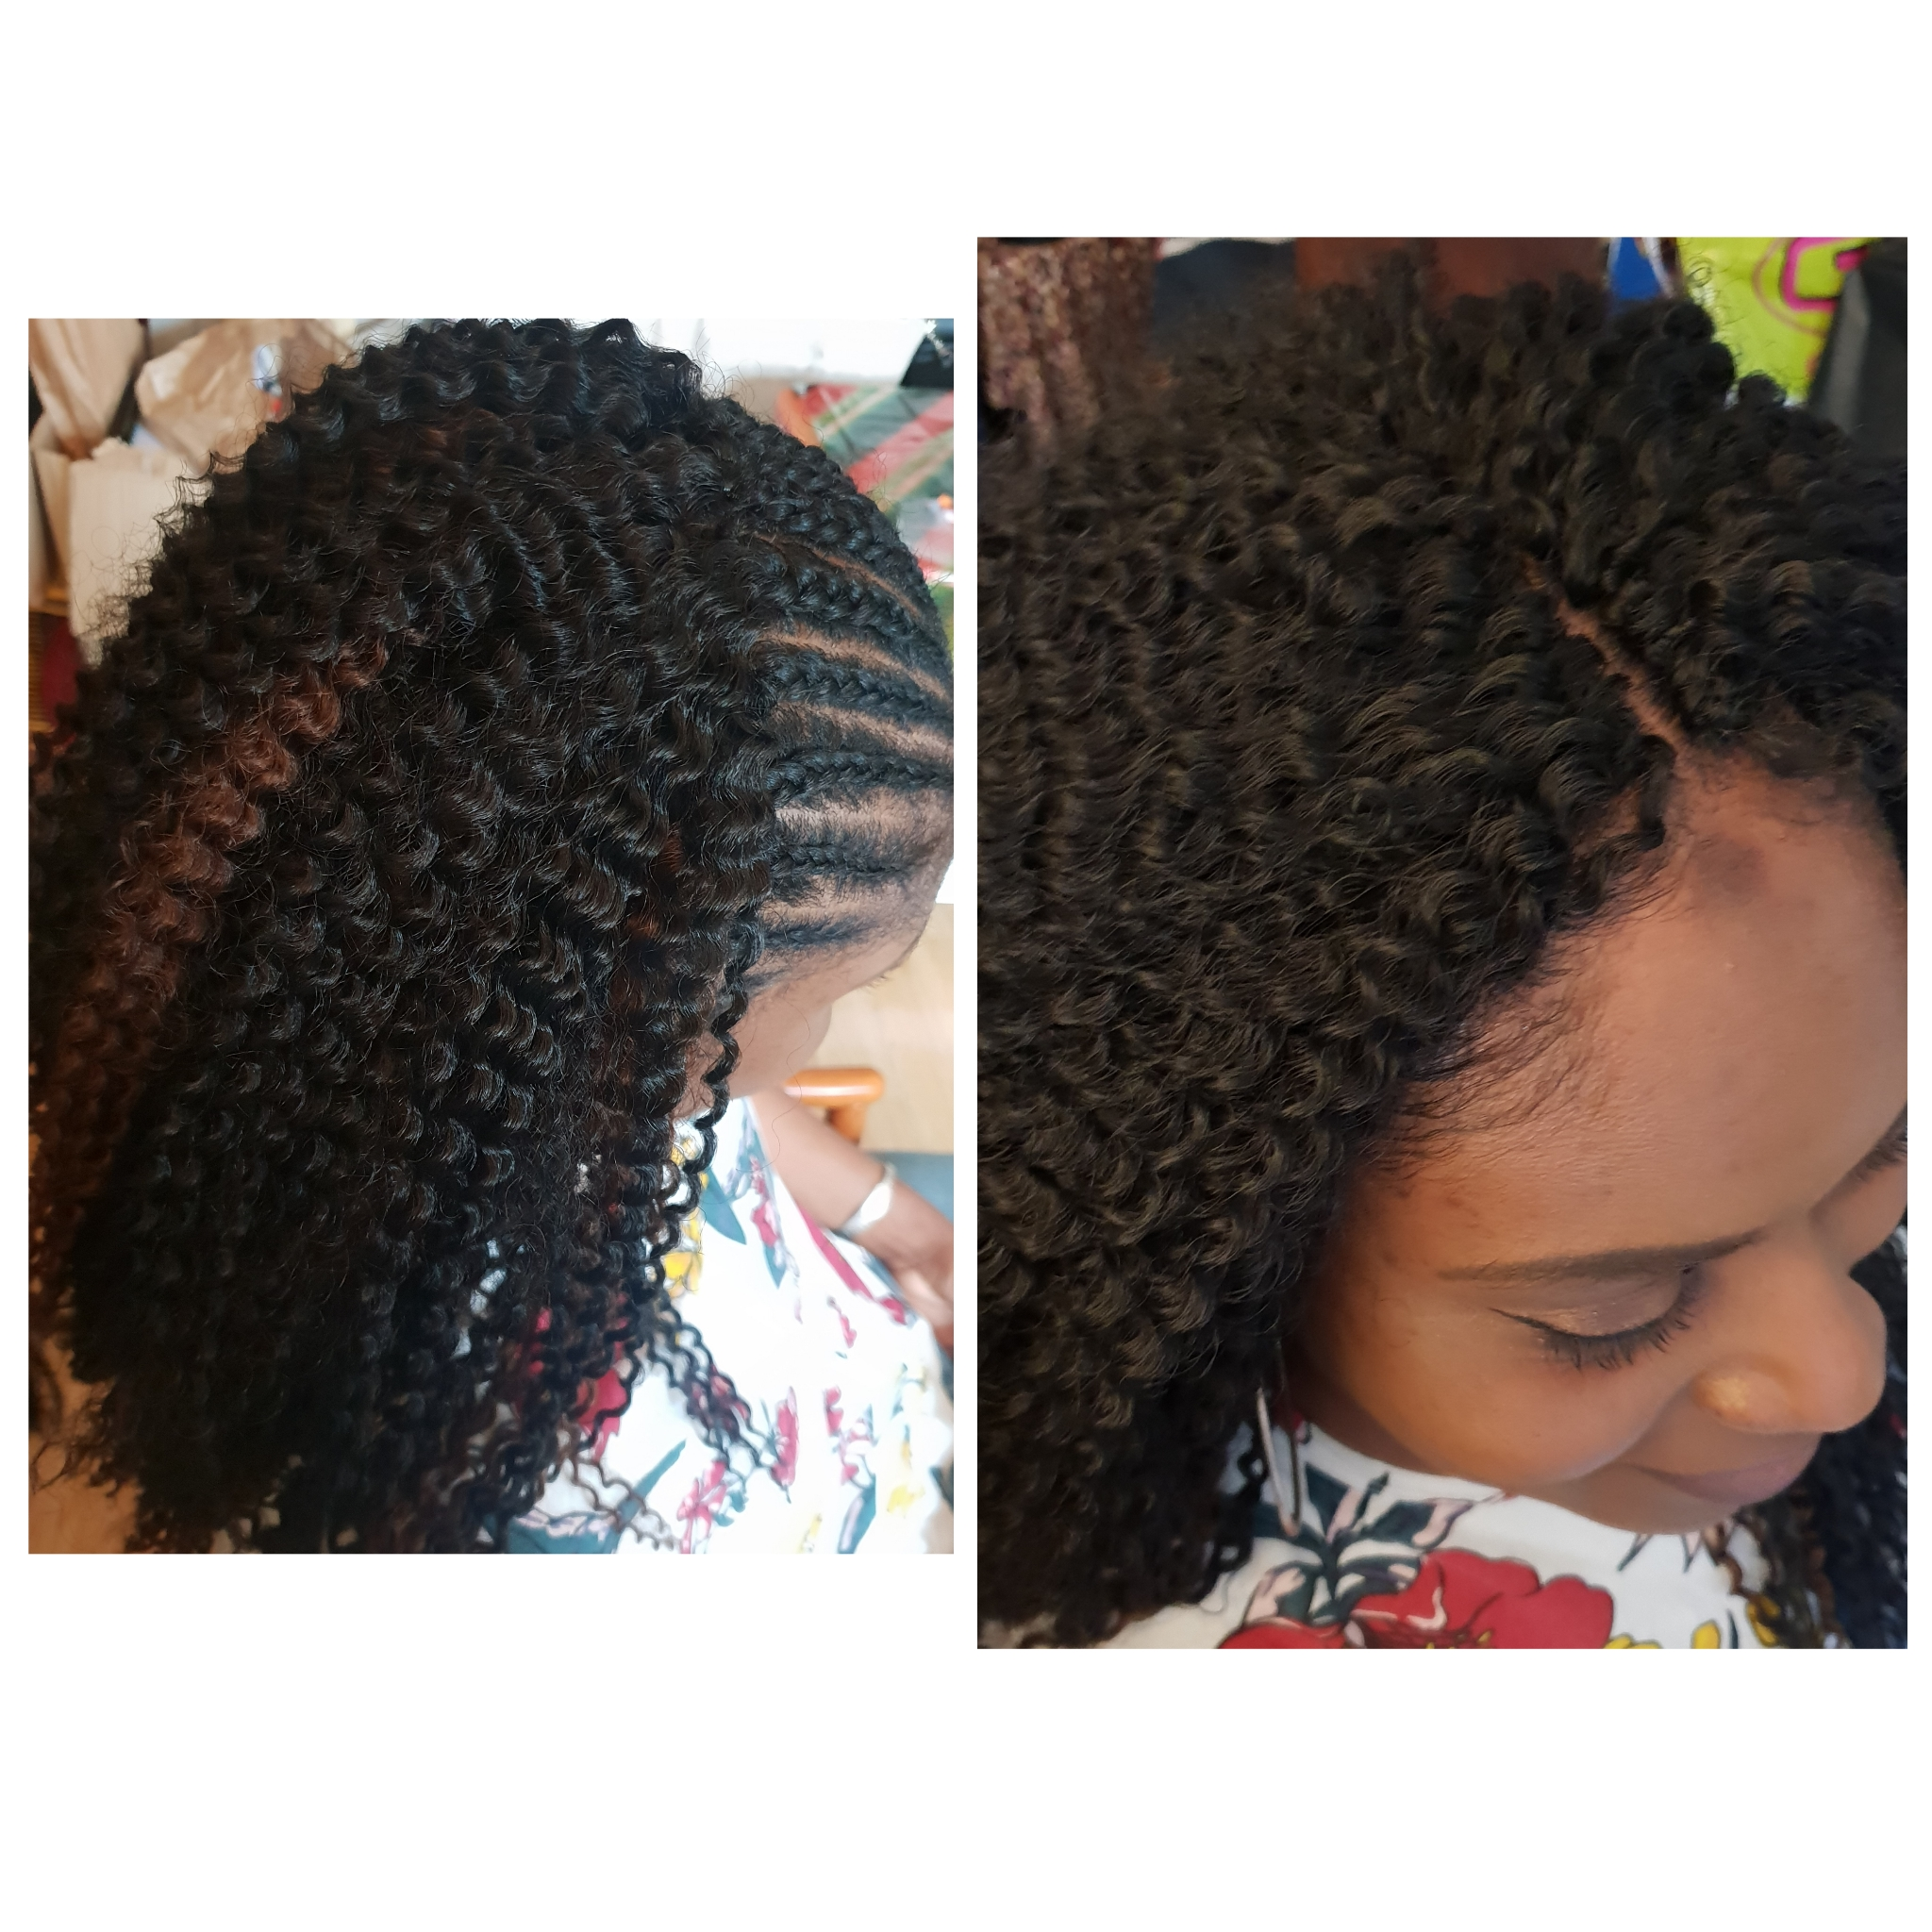 salon de coiffure afro tresse tresses box braids crochet braids vanilles tissages paris 75 77 78 91 92 93 94 95 POWNWUOP